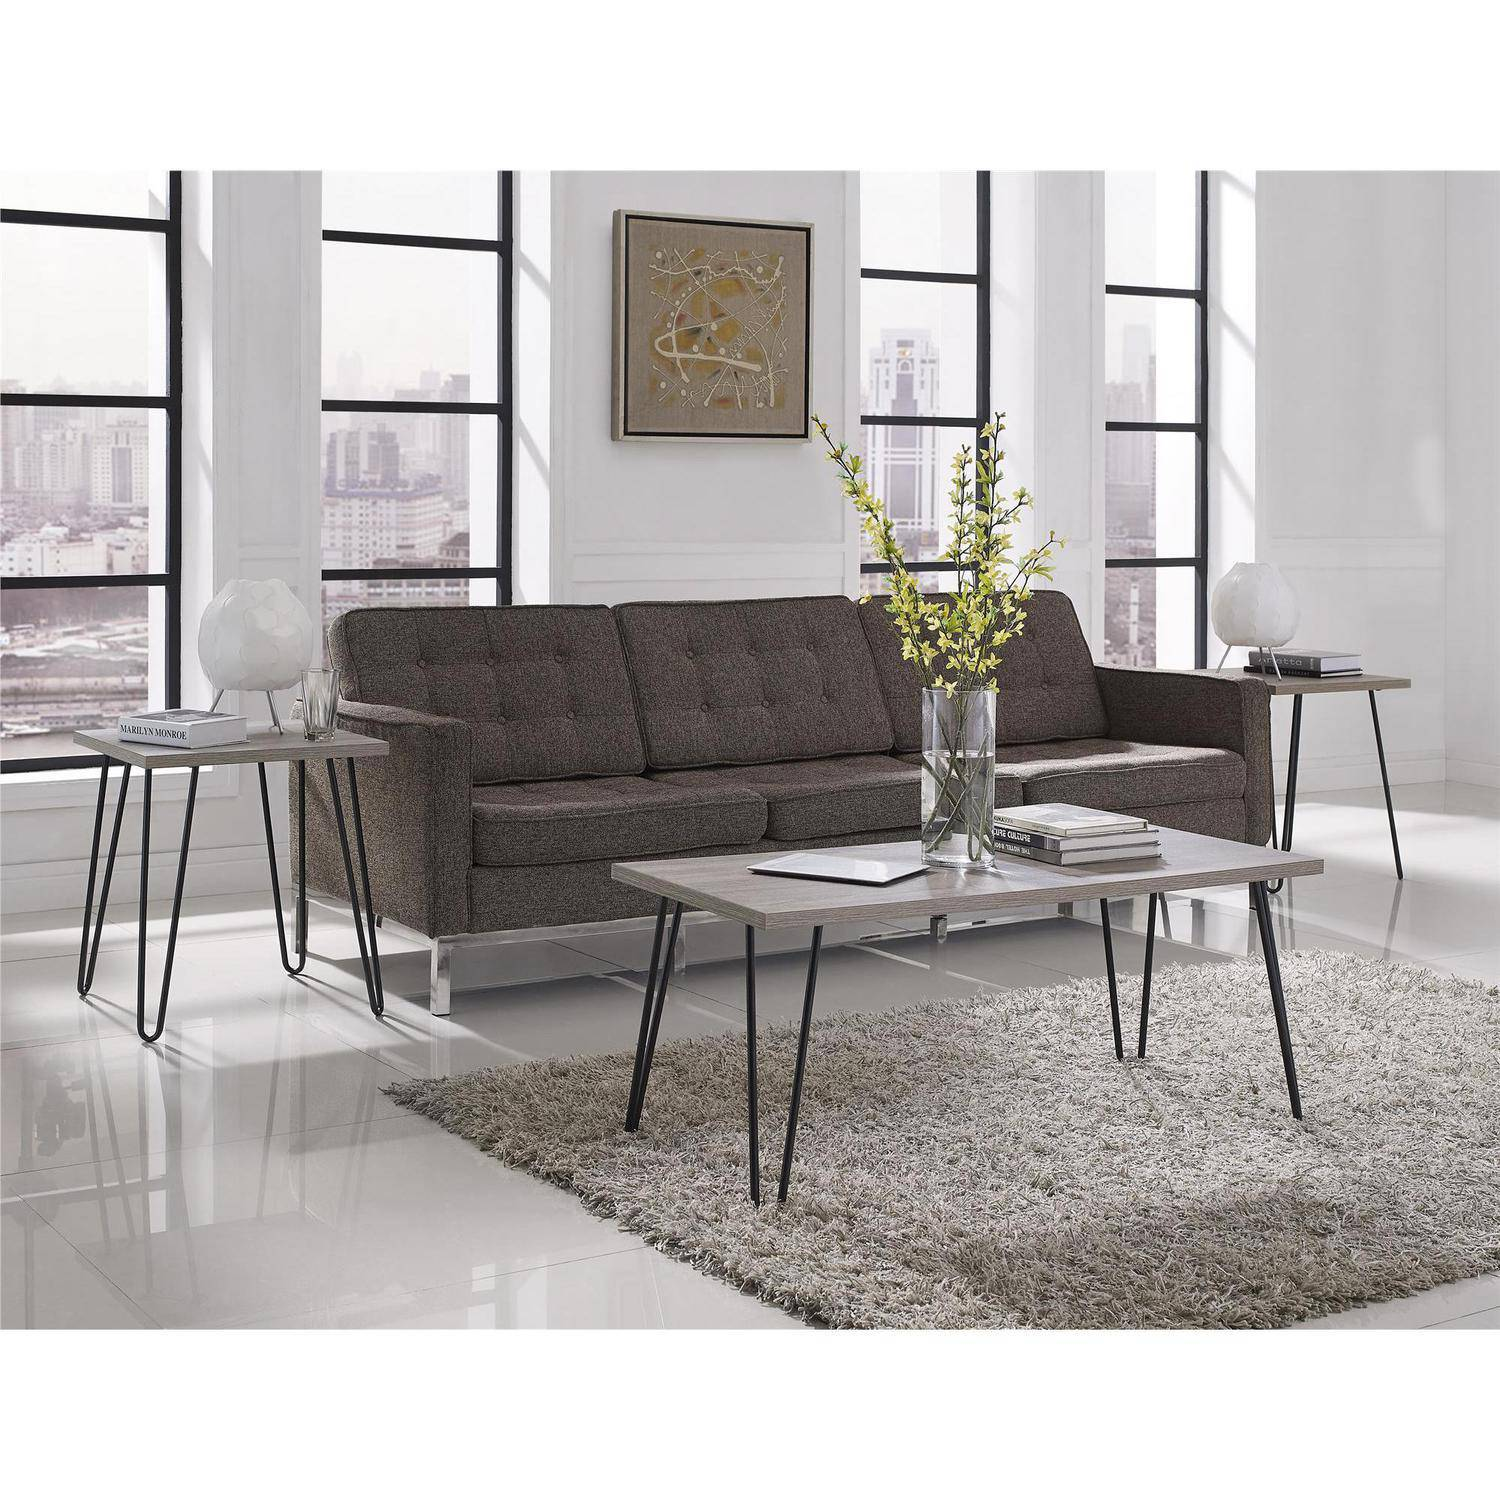 ameriwood home owen retro end table espresso teal room essentials hairpin accent marble top tulip side small with farm style coffee black drawers ethan allen ballan round red